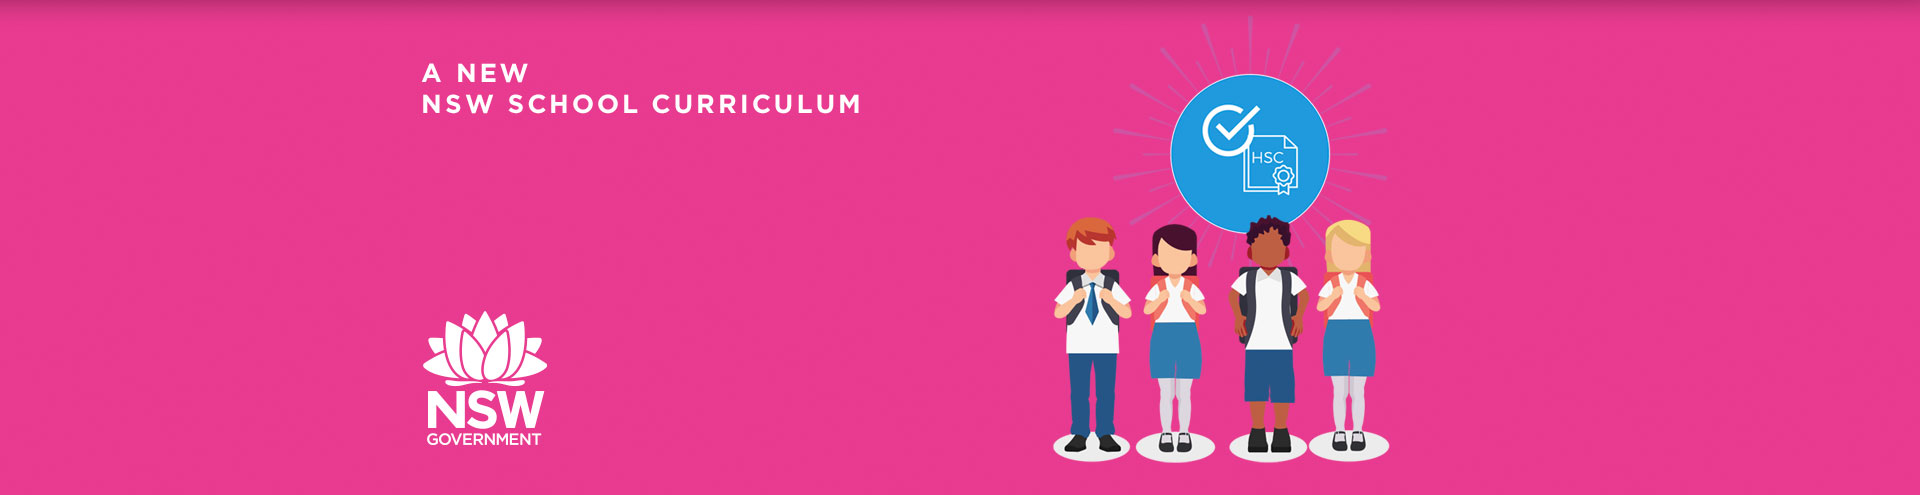 NSW Curriculum - case study for hopping mad designs